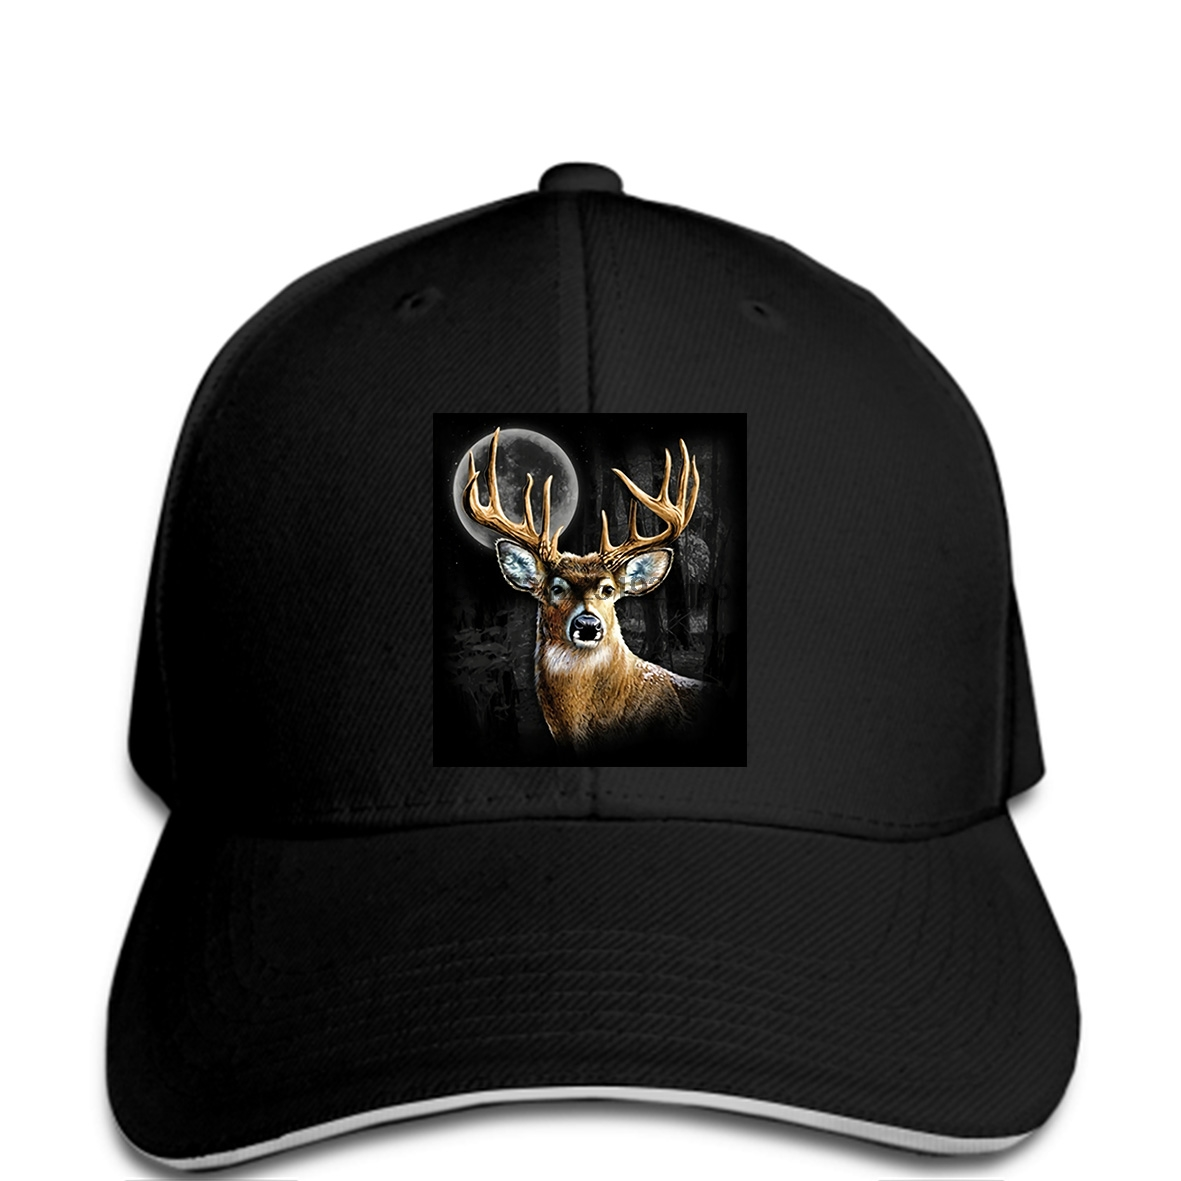 de867a992 Detail Feedback Questions about Men Baseball cap WHITETAIL WILDERNESS deer  buck hunter hunt funny cap novelty cap women on Aliexpress.com